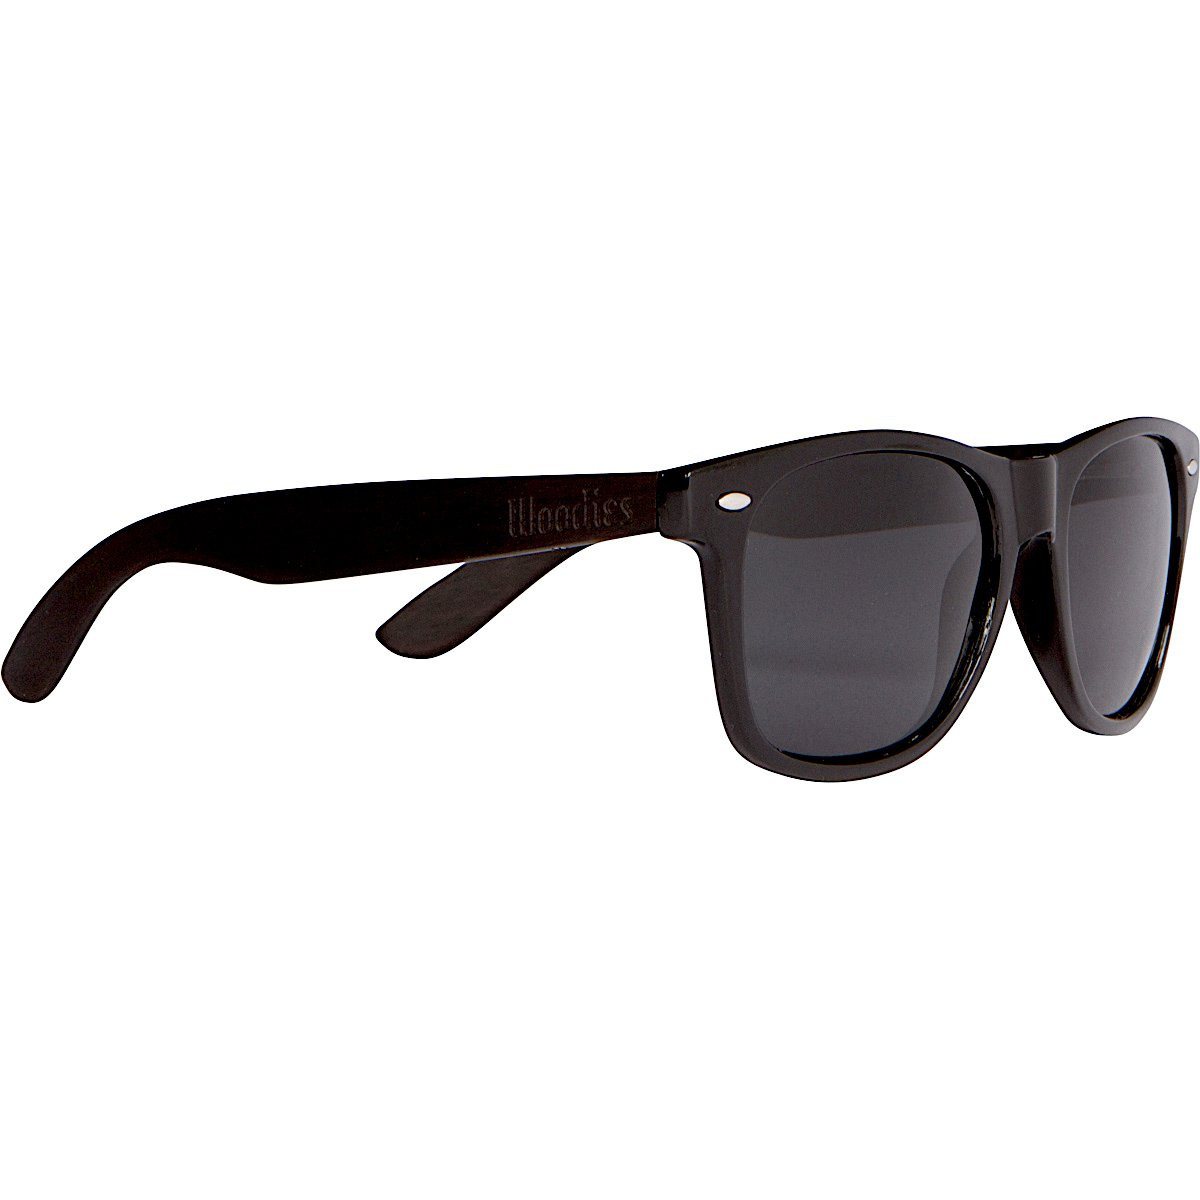 WOODIES Ebony Wood Wayfarer Sunglasses with Black Polarized Lenses for Men or Women